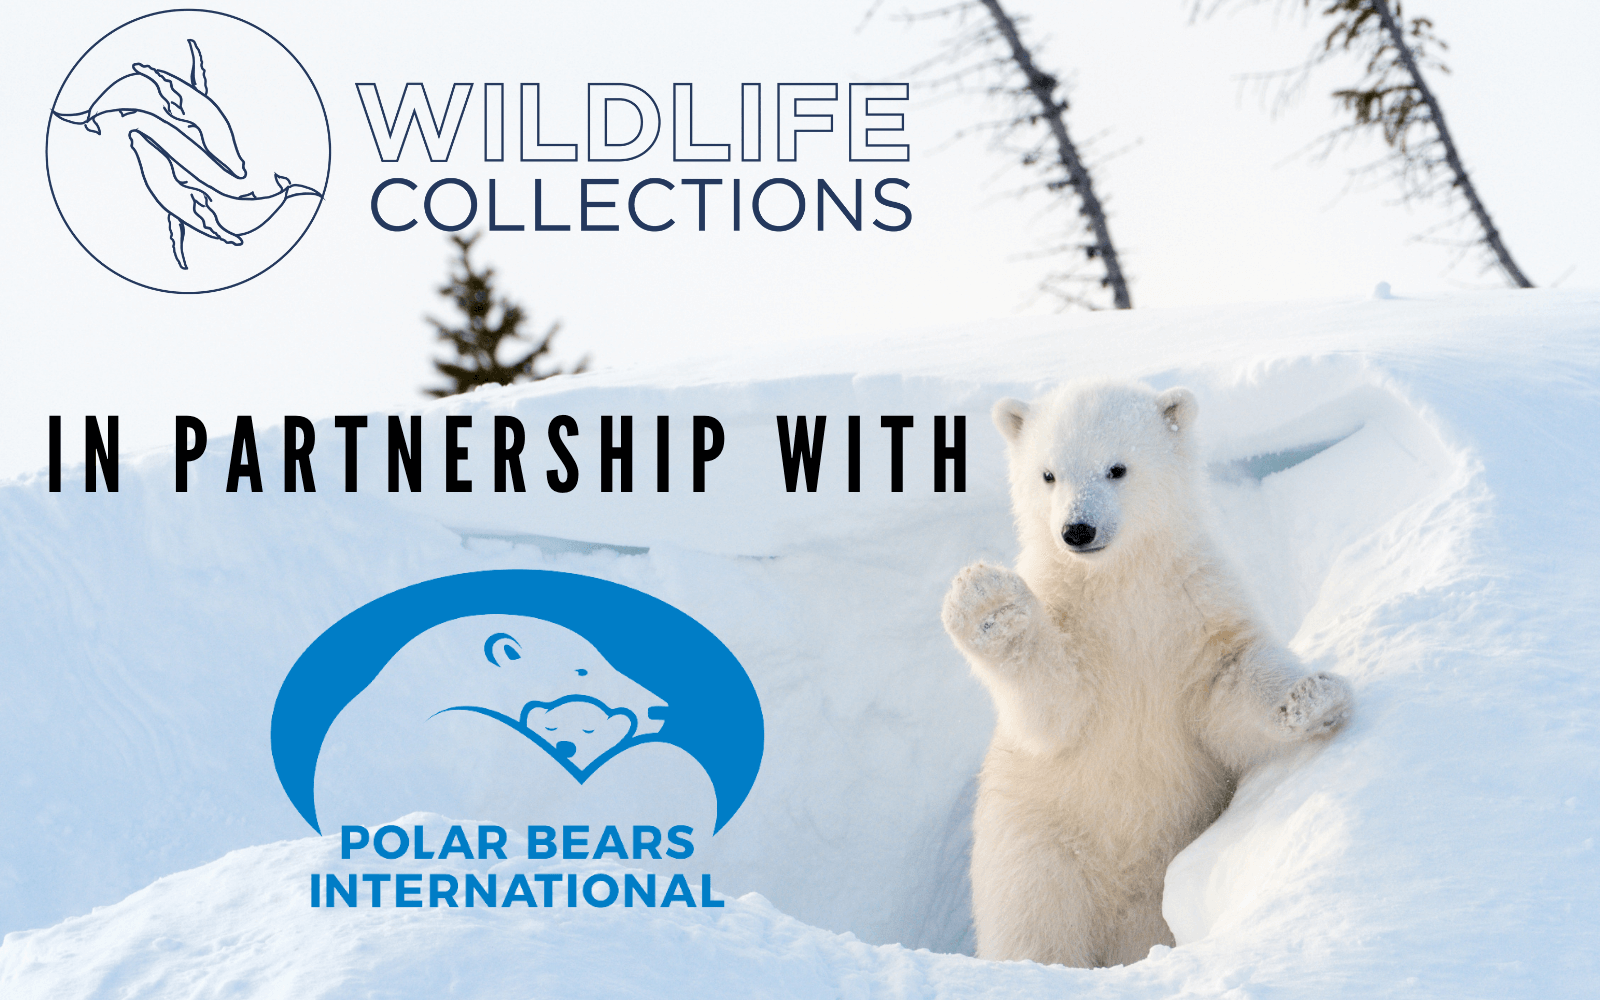 Wildlife Collections in Partnership with Polar Bears International